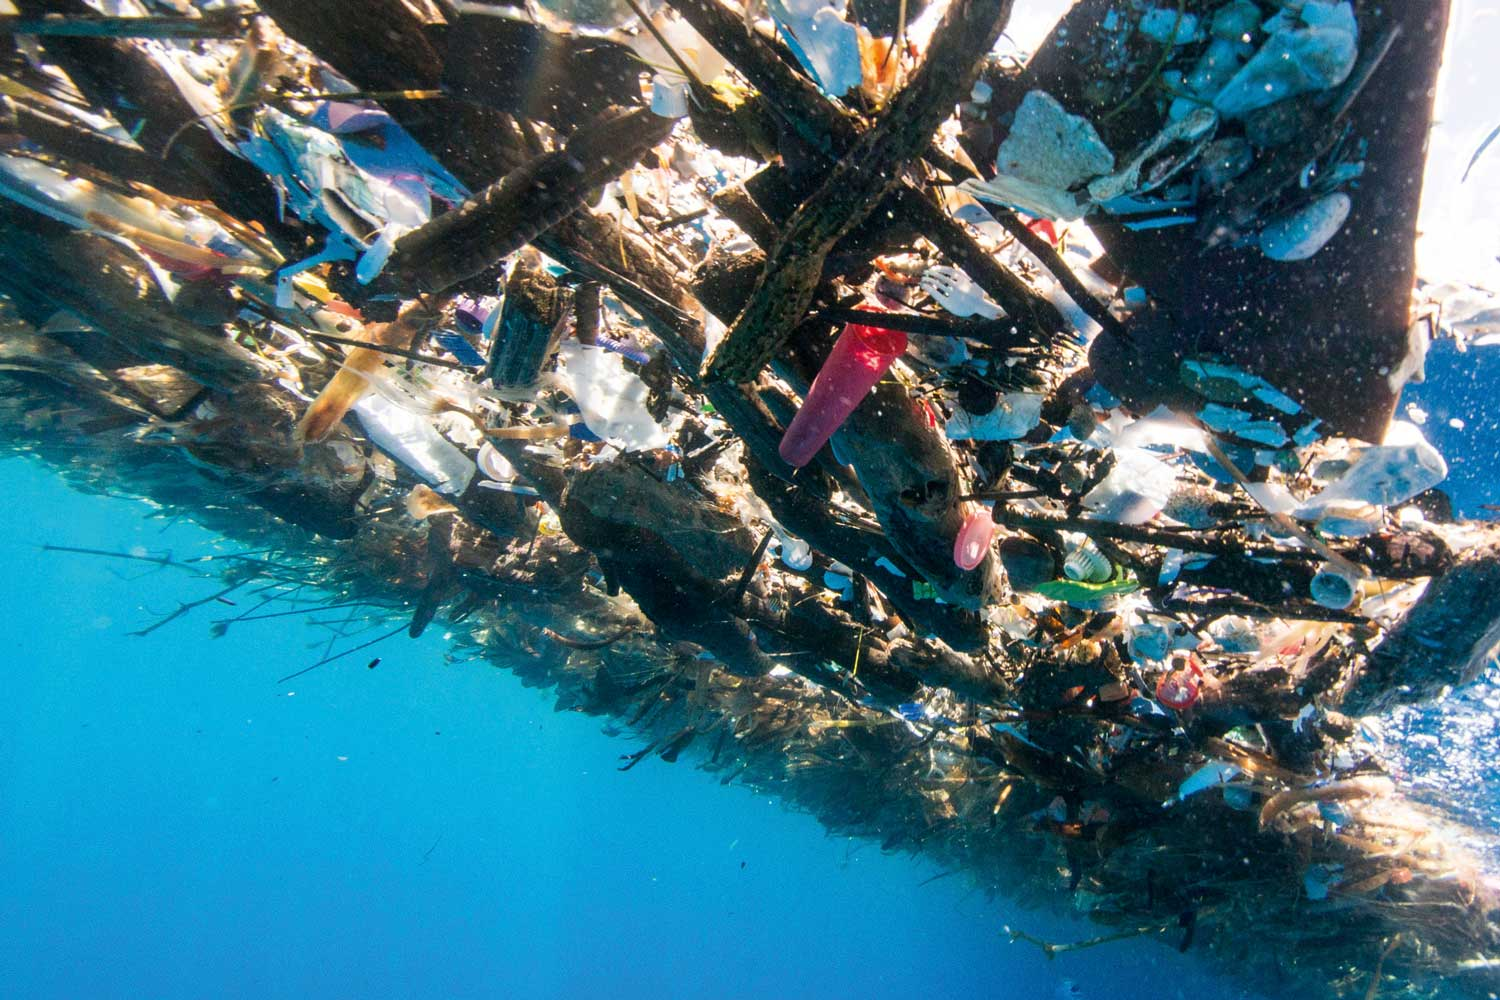 Trash on the ocean surface (Image: Caroline Power)